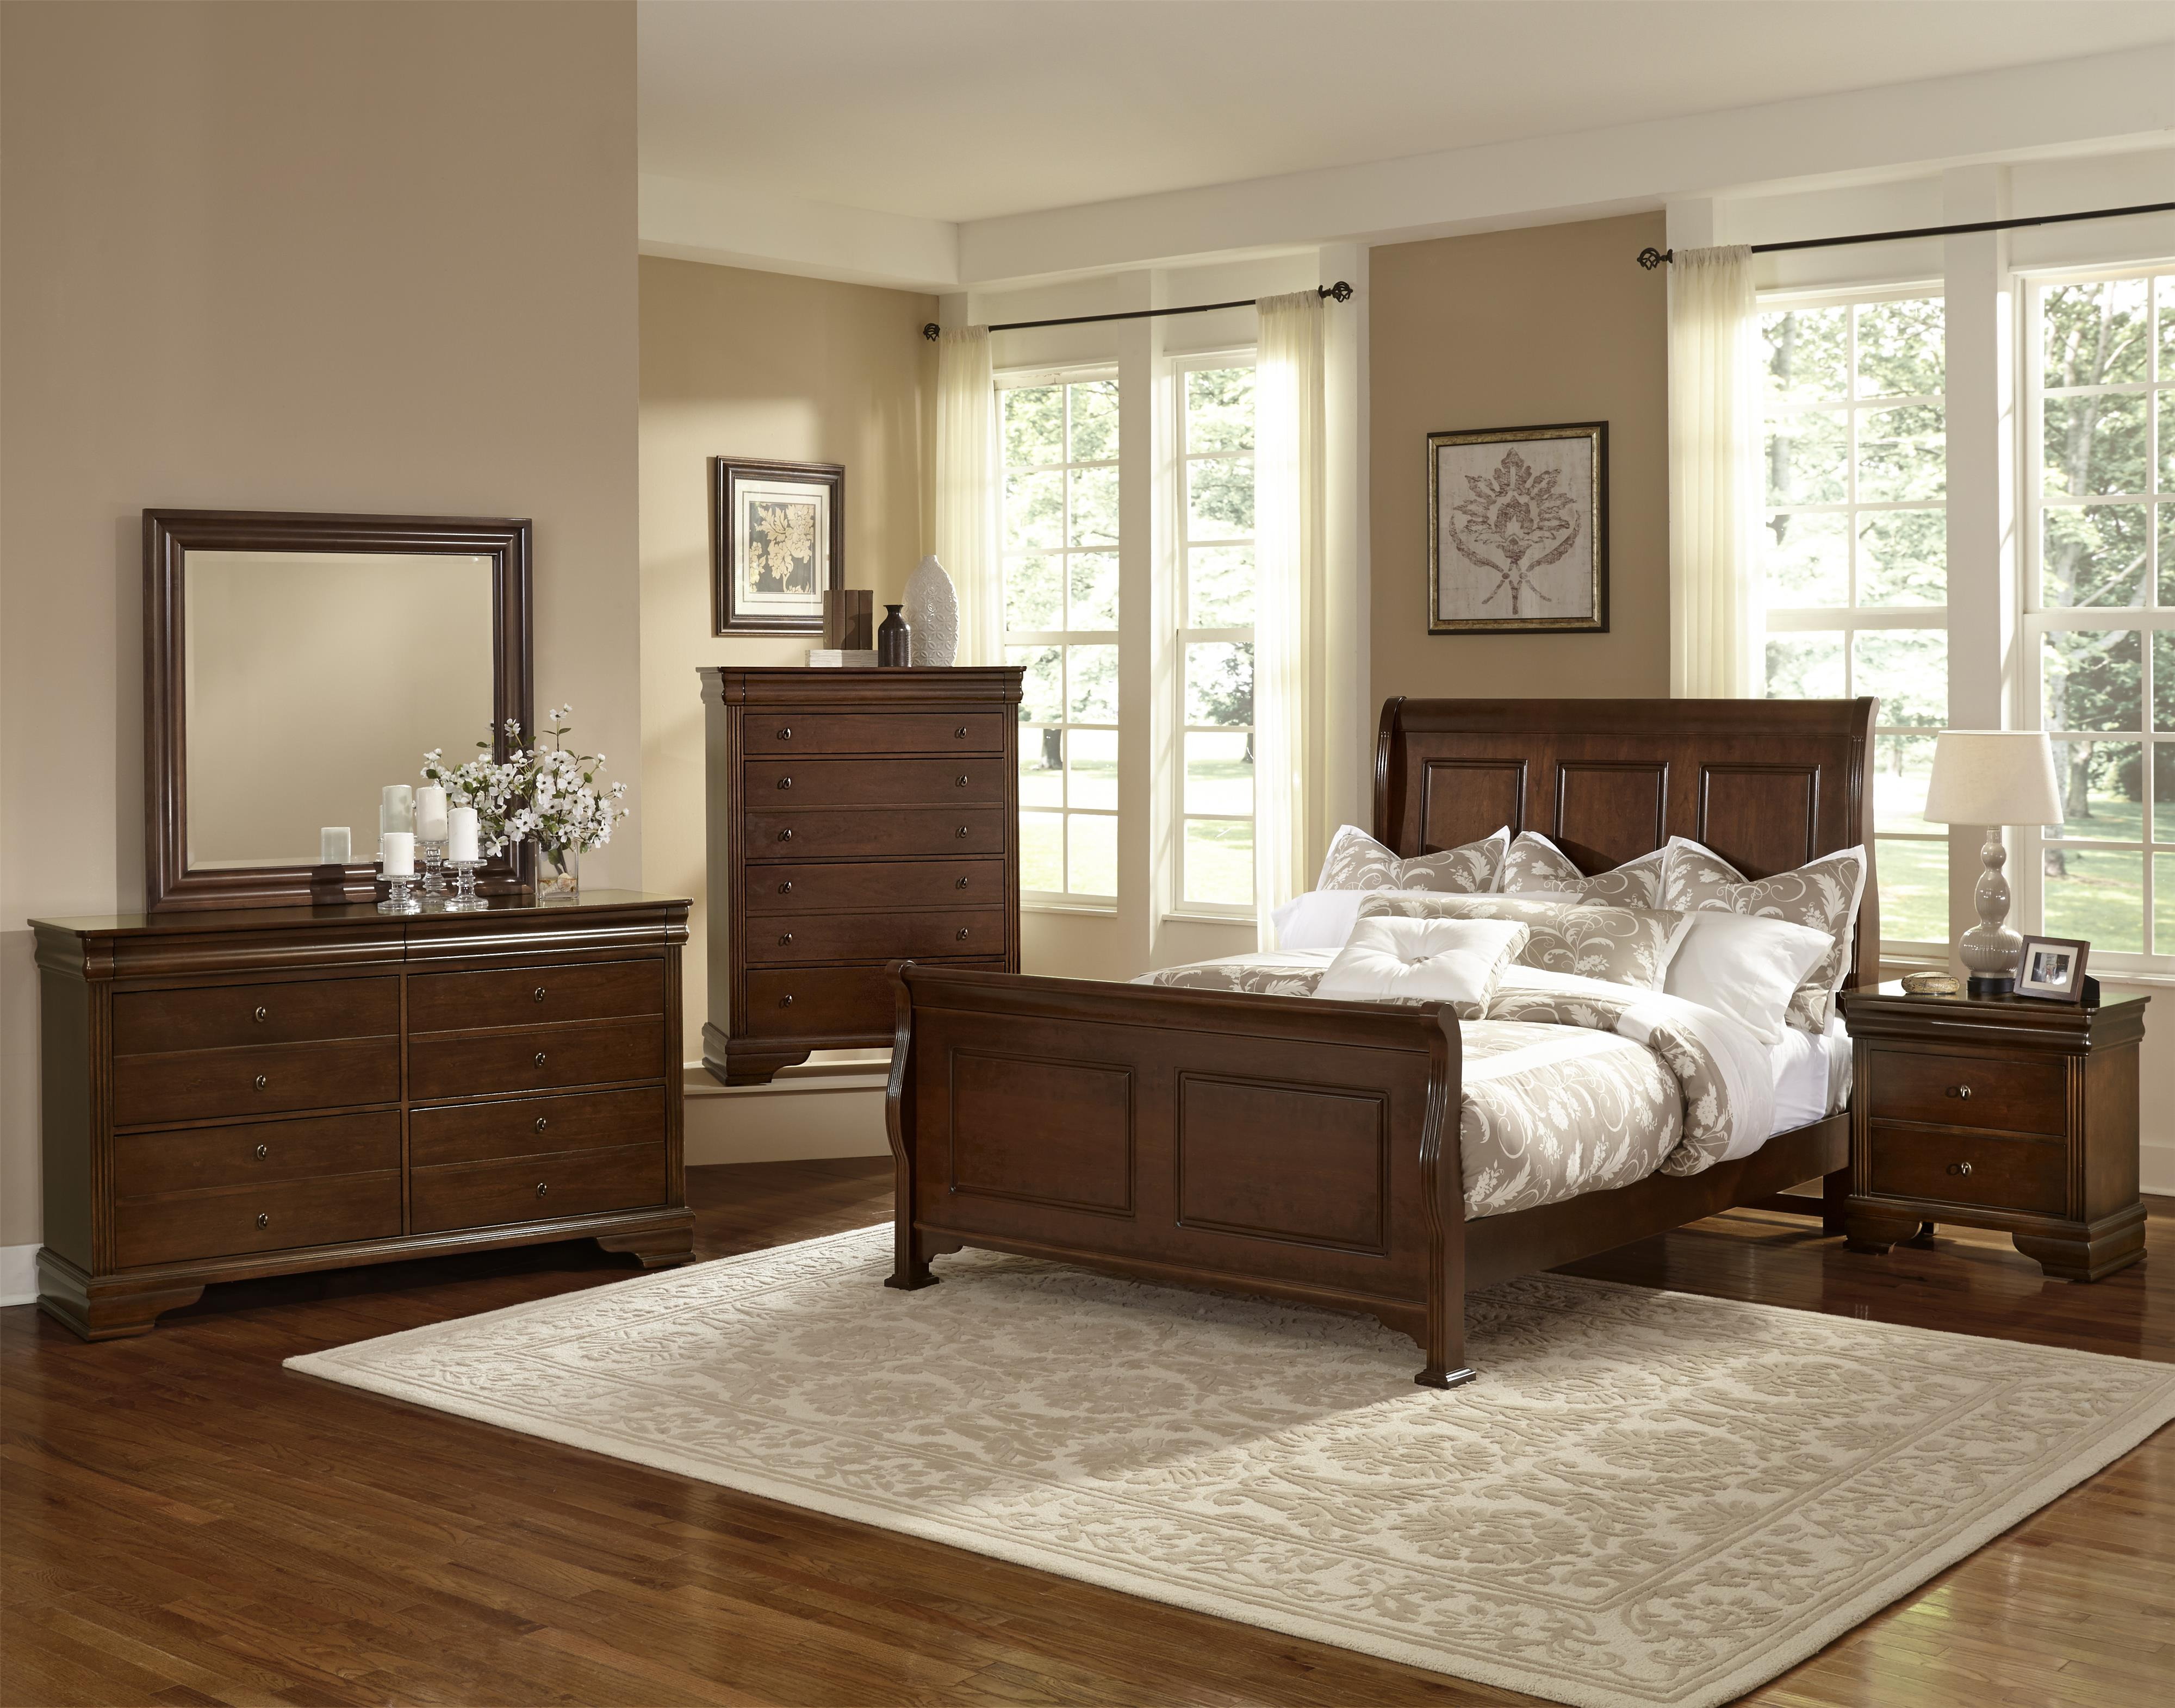 Vaughan Bassett French Market Full Bedroom Group - Item Number: 382 F Bedroom Group 2